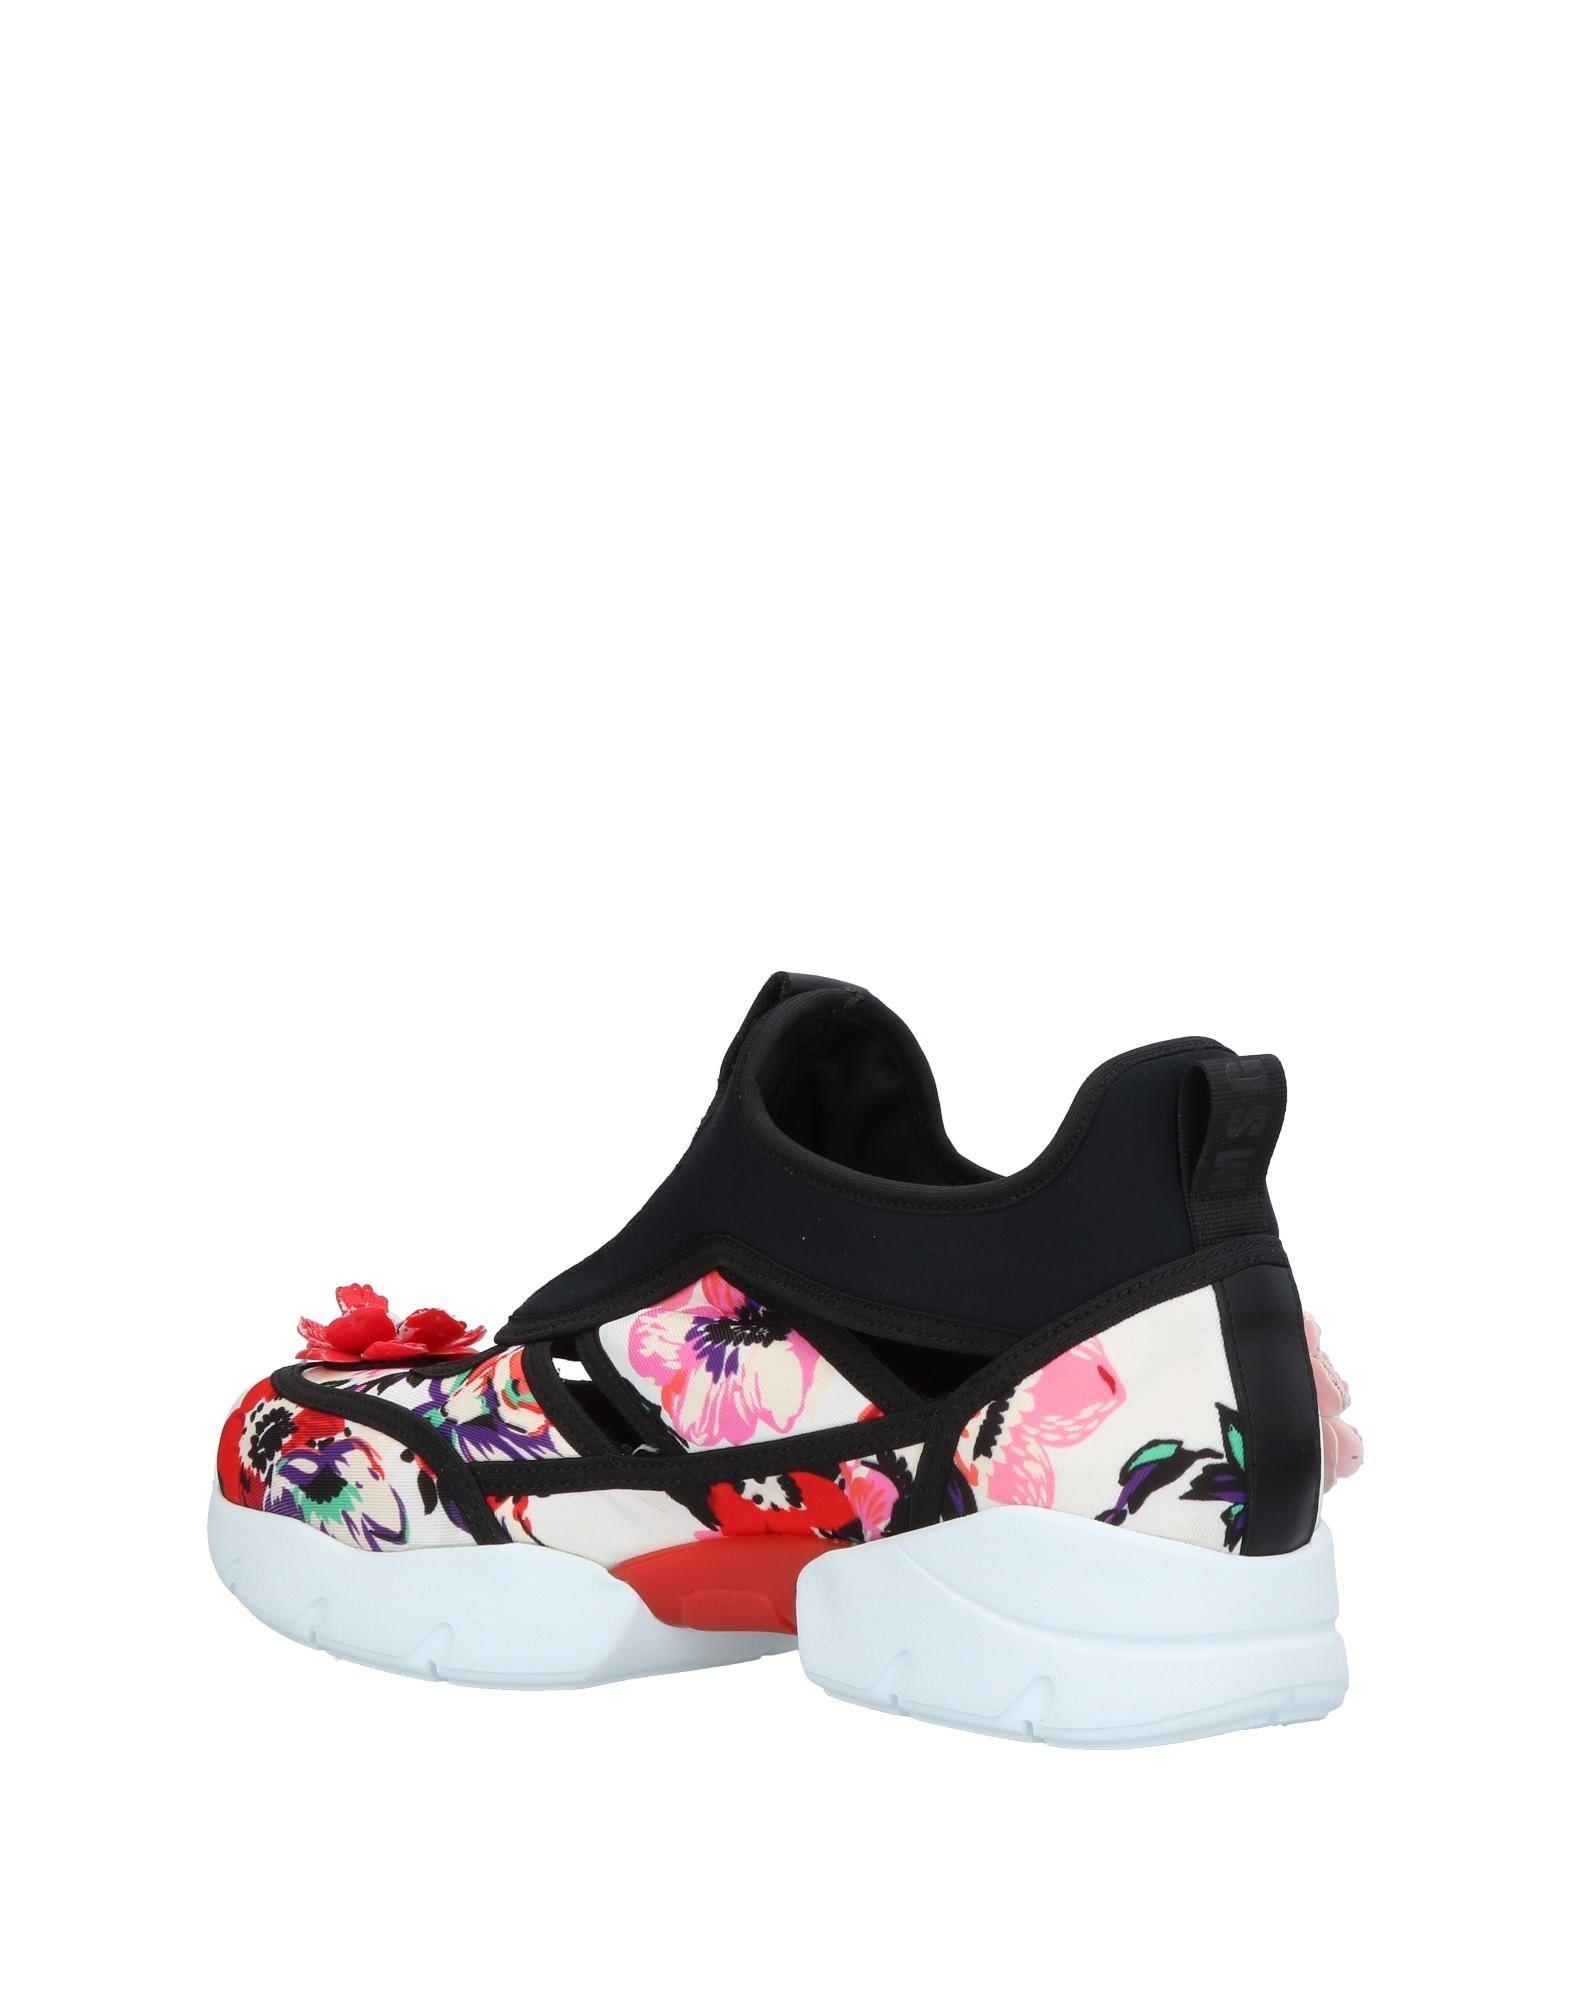 MSGM Neoprene Low-tops & Sneakers in Ivory (White)